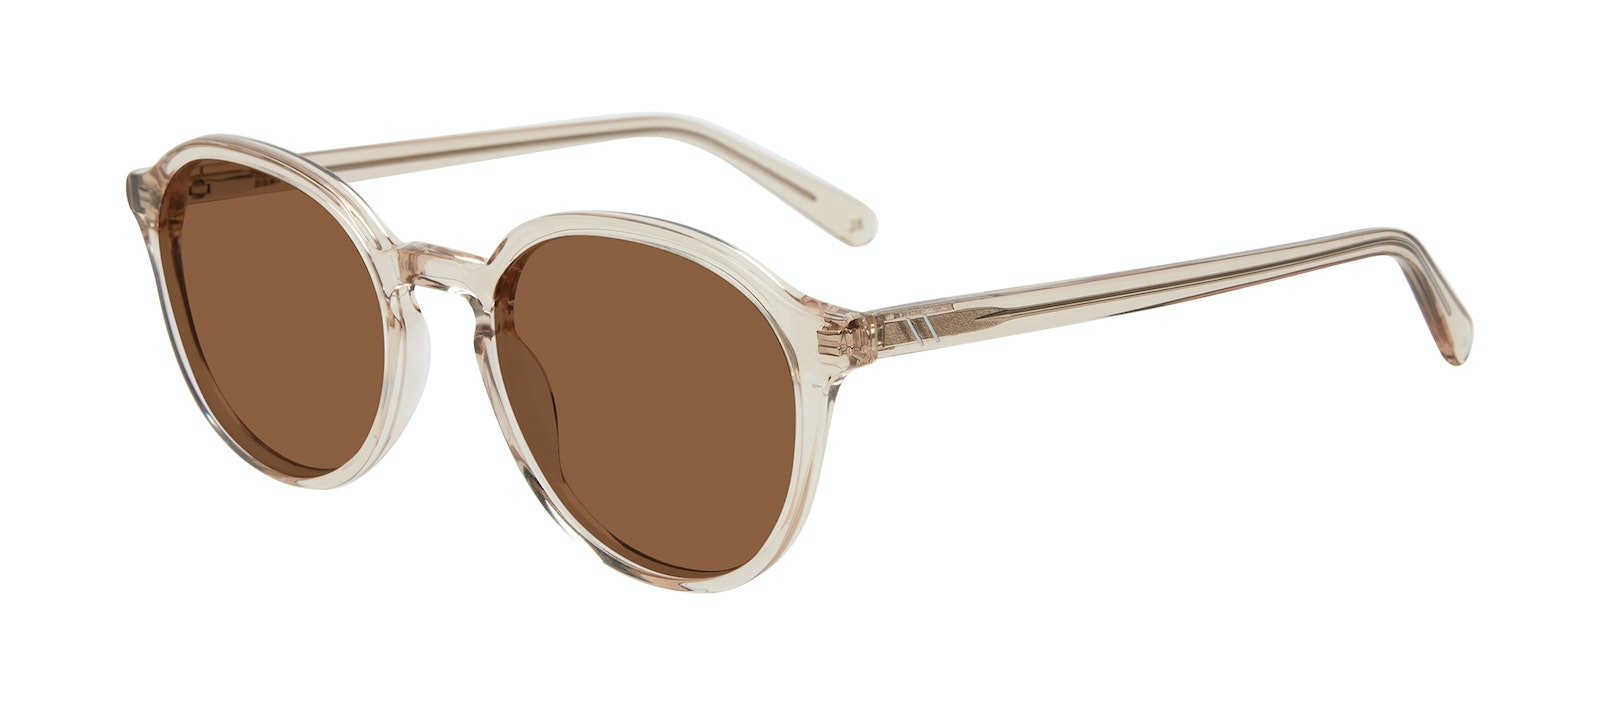 Affordable Fashion Glasses Round Sunglasses Men Ansel Golden Tilt